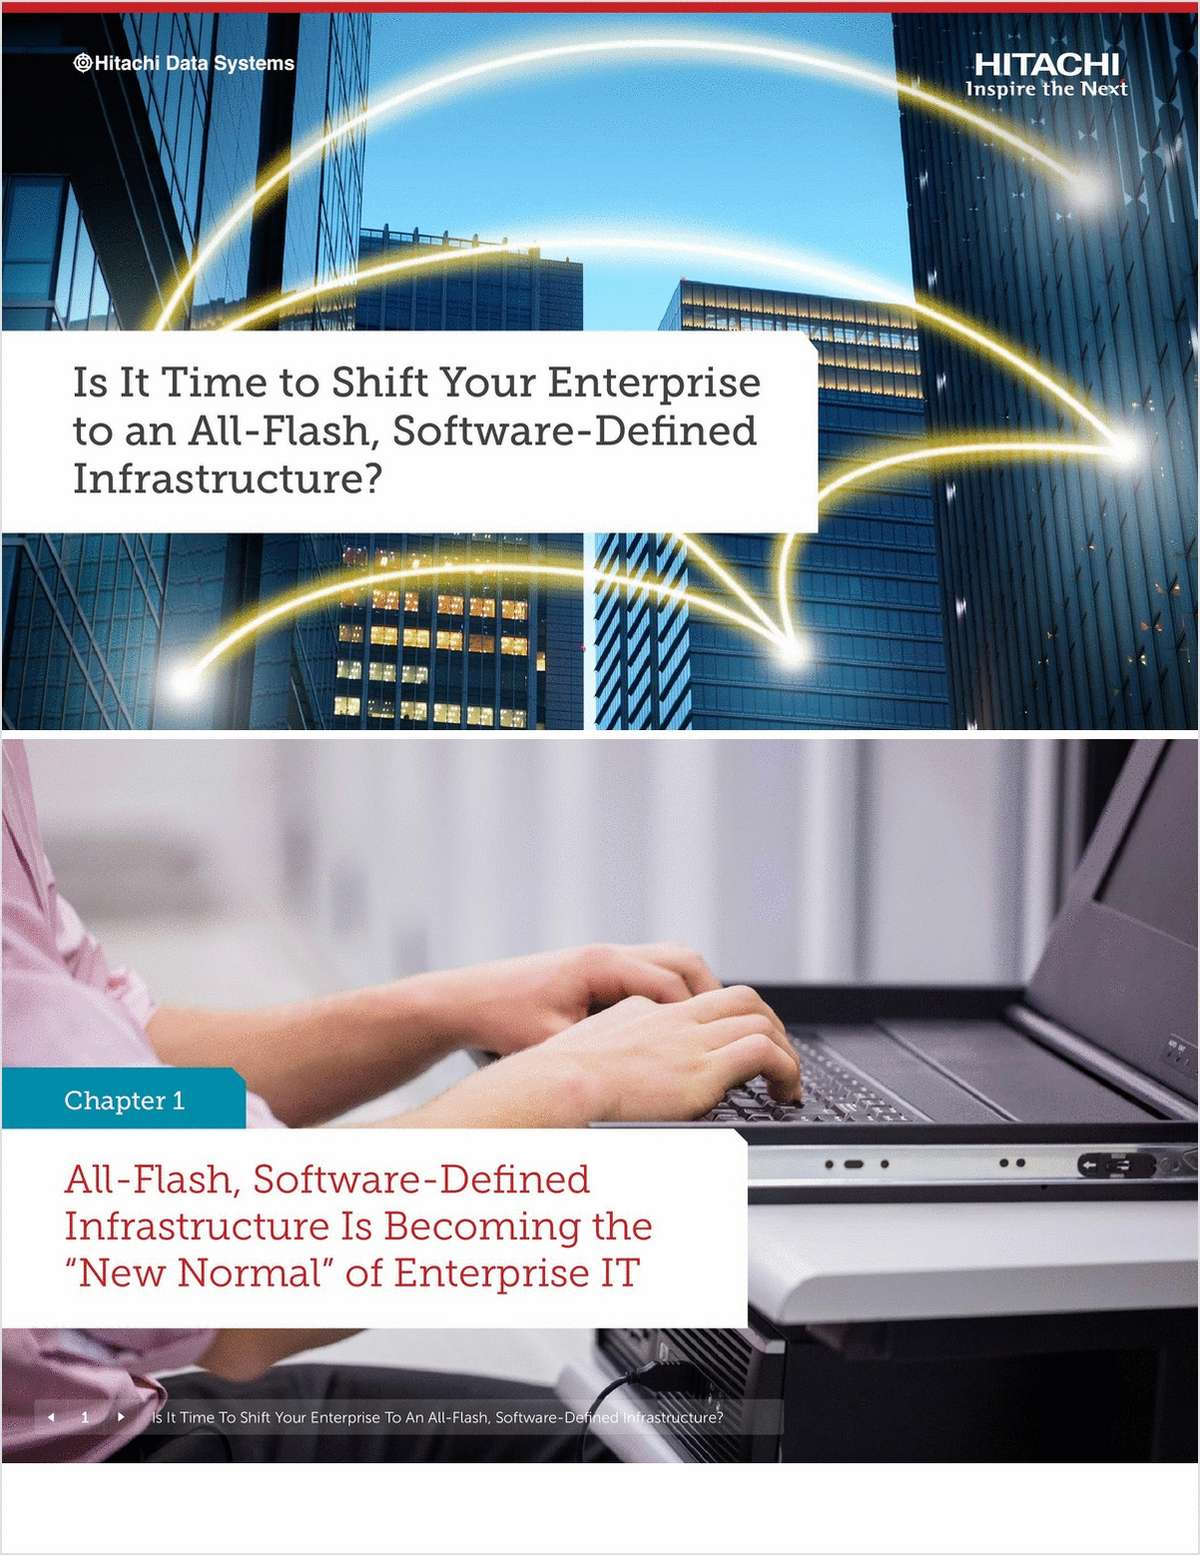 Is It Time to Shift Your Enterprise to an All-Flash, Software-Defined Infrastructure?